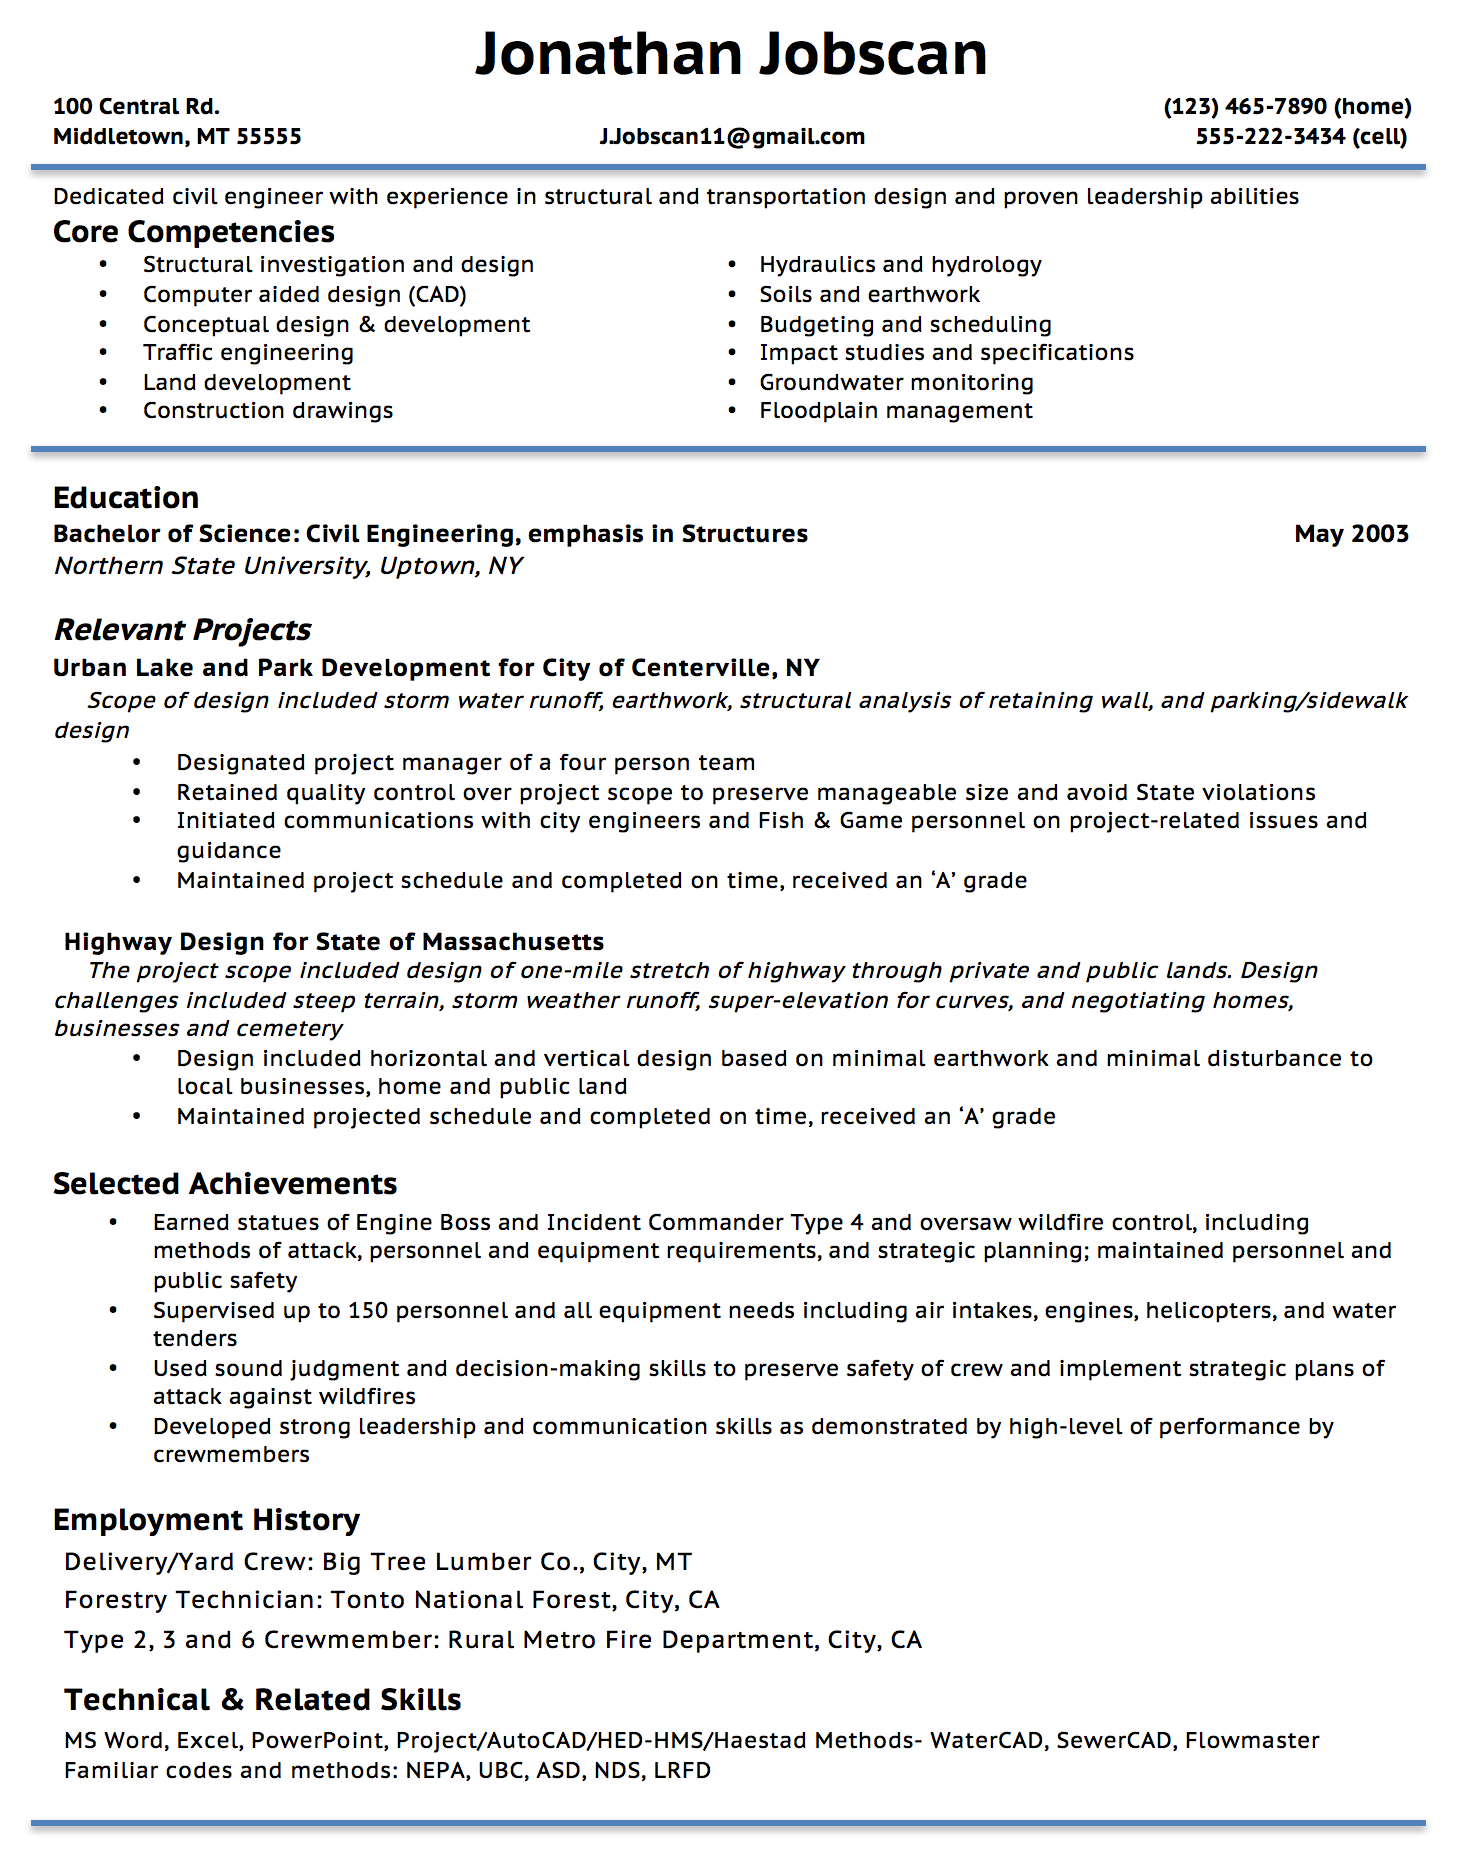 Opposenewapstandardsus  Pleasant Resume Writing Guide  Jobscan With Lovable Example Of A Functional Resume Format With Cute A Good Cover Letter For A Resume Also Emt Resume Sample In Addition Images Of Resume And Should You Include References On Resume As Well As Verbs Resume Additionally Objective For A General Resume From Jobscanco With Opposenewapstandardsus  Lovable Resume Writing Guide  Jobscan With Cute Example Of A Functional Resume Format And Pleasant A Good Cover Letter For A Resume Also Emt Resume Sample In Addition Images Of Resume From Jobscanco